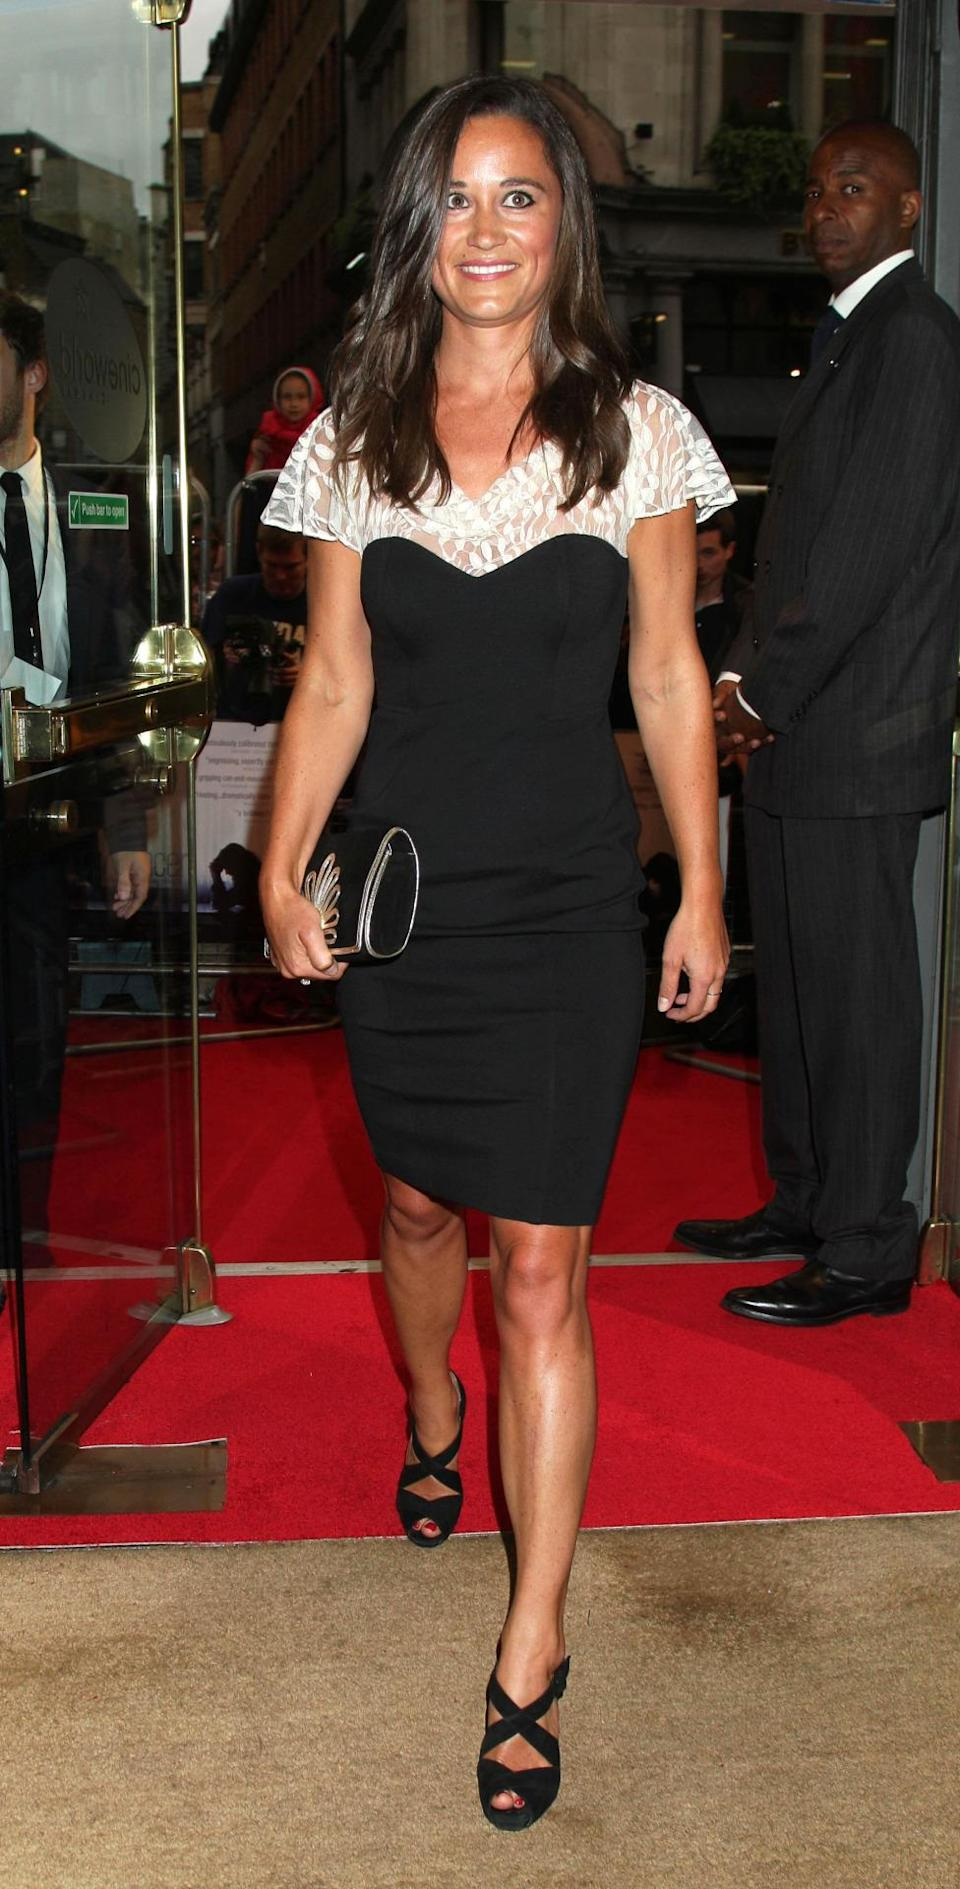 <p>At a film premiere in summer 2012, Pippa opted to wear a monochrome dress by British luxe label Temperley. <i>[Photo: PA Images]</i> </p>